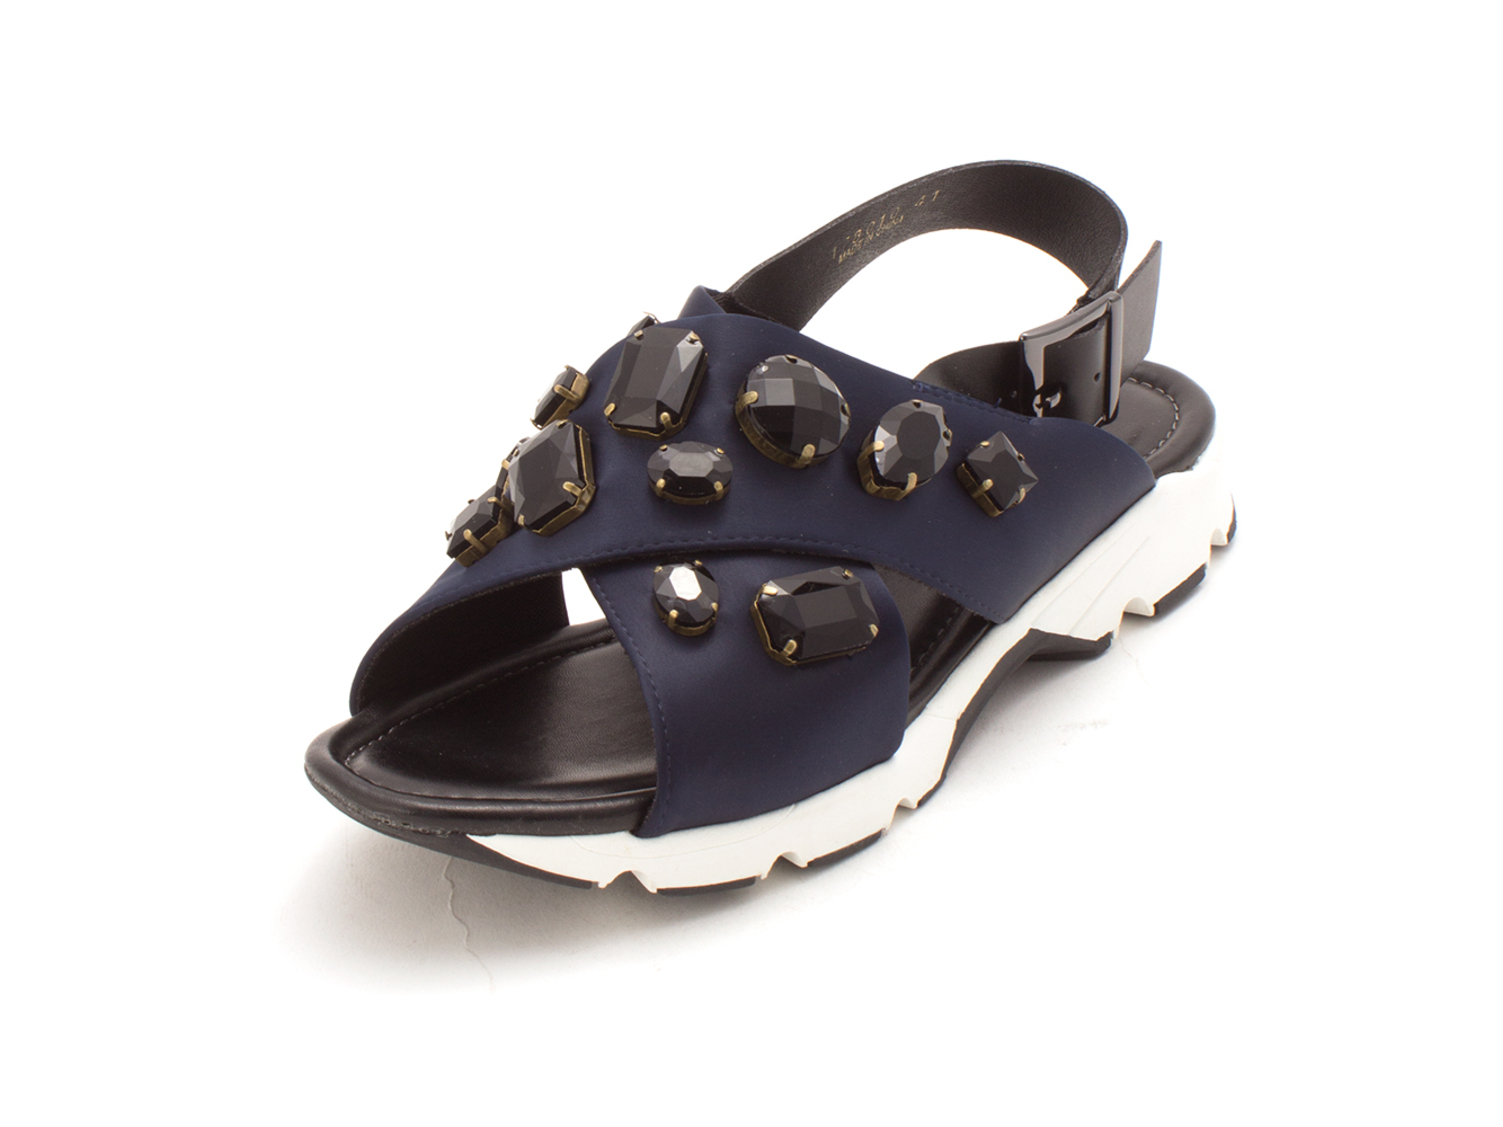 Size 5.5 ALL BLACK Womens Royal Cross Open Toe Casual Slingback Sandals Navy